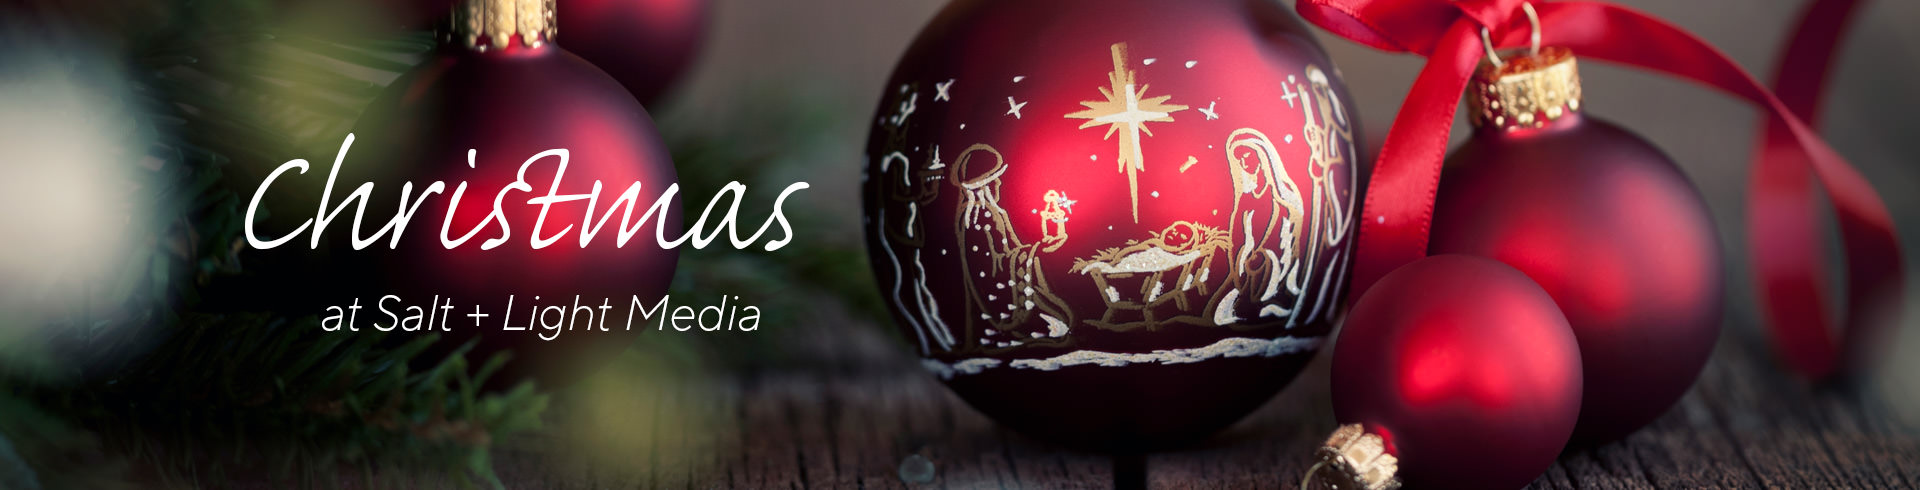 ADVENT AND CHRISTMAS IN SALT + LIGHT MEDIA